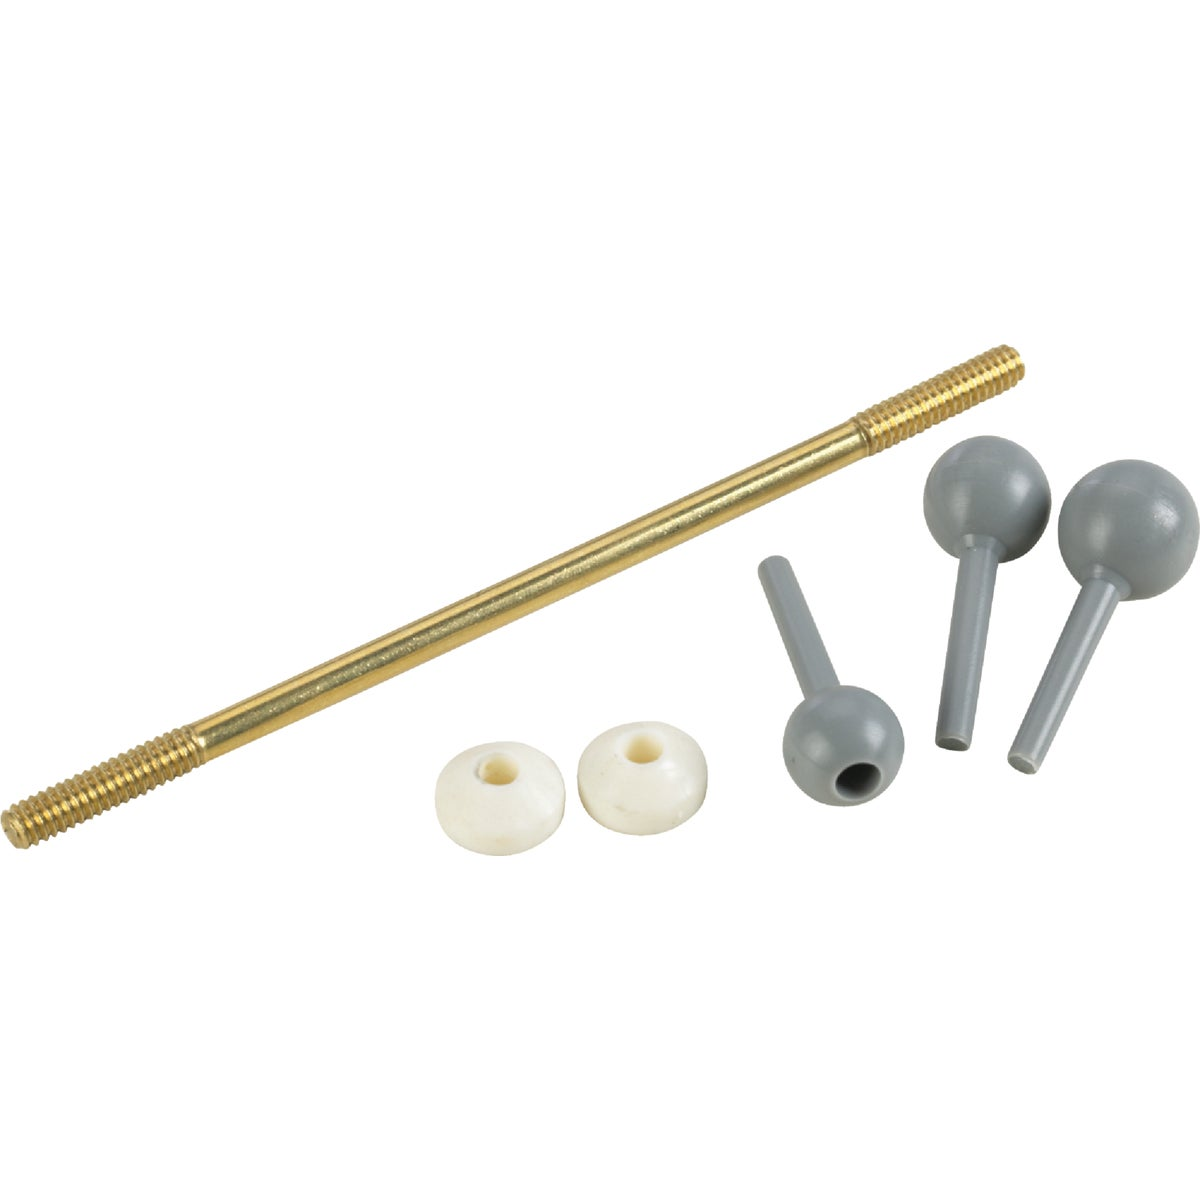 UNIVERSAL BALL ROD - 88532 by Danco Perfect Match